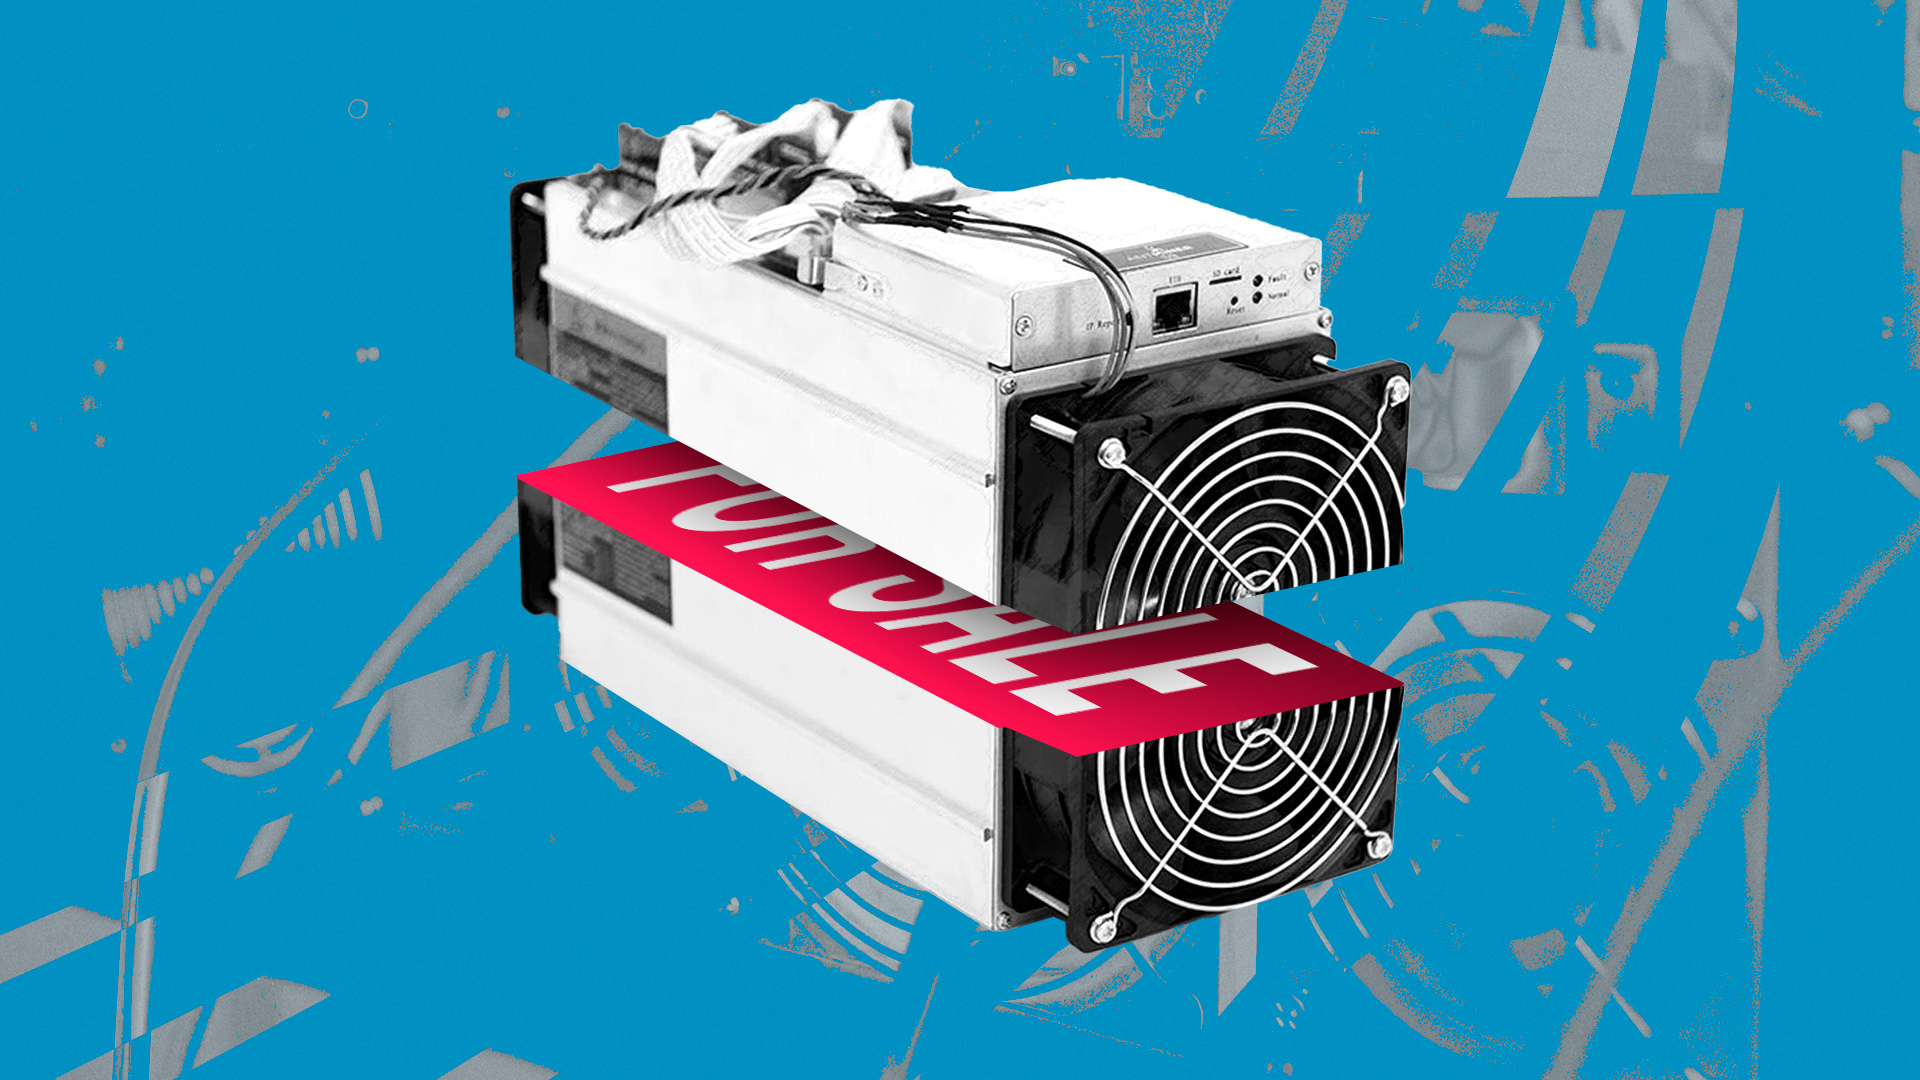 Bitmain says chip supplier TSMC will increase wafer prices immediately